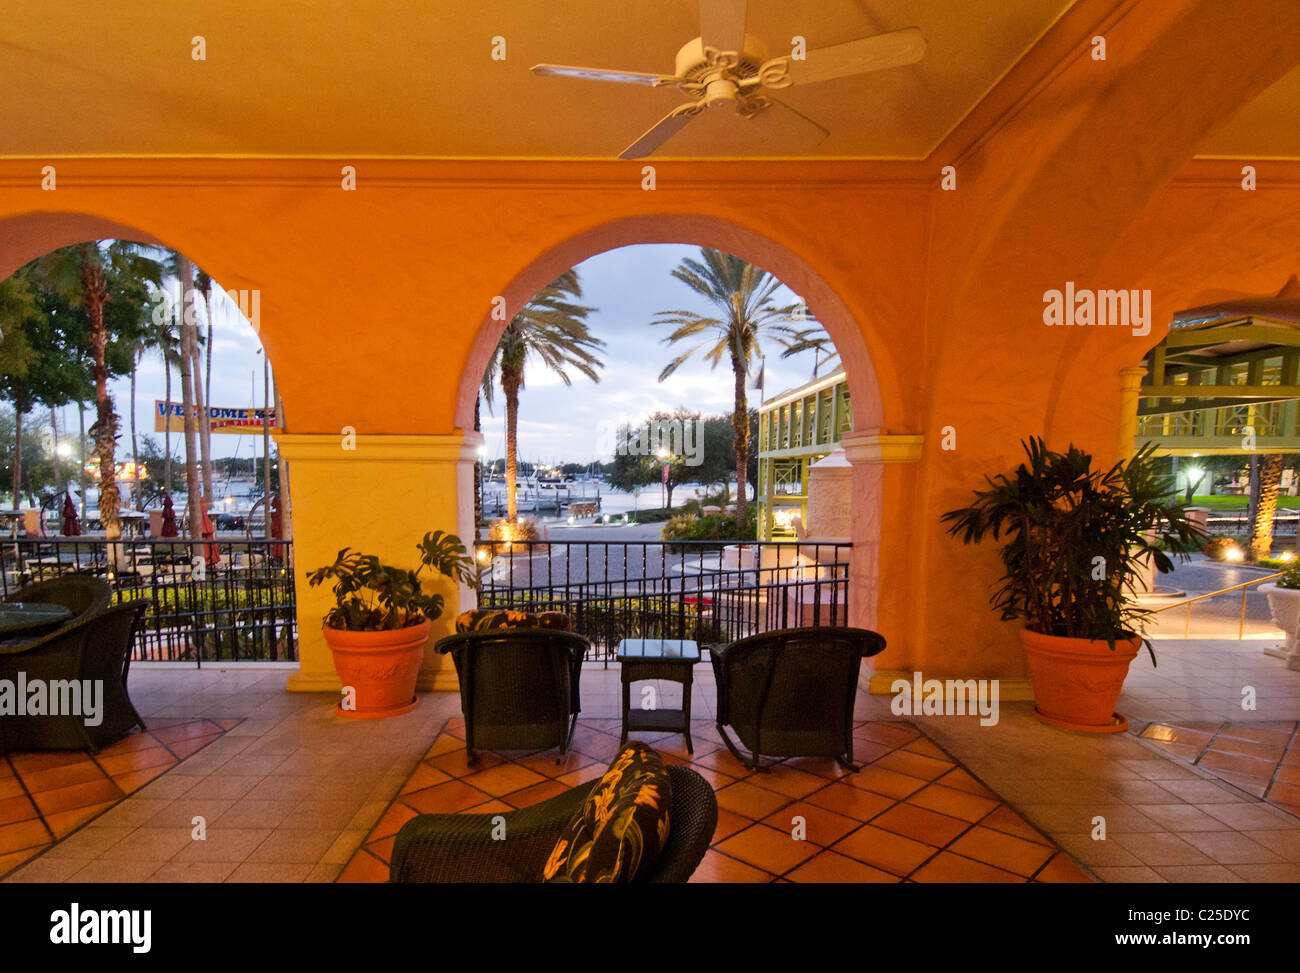 Exterior veranda of The Renaissance Vinoy luxury resort and marina in downtown St. Petersburg, Florida - Stock Image